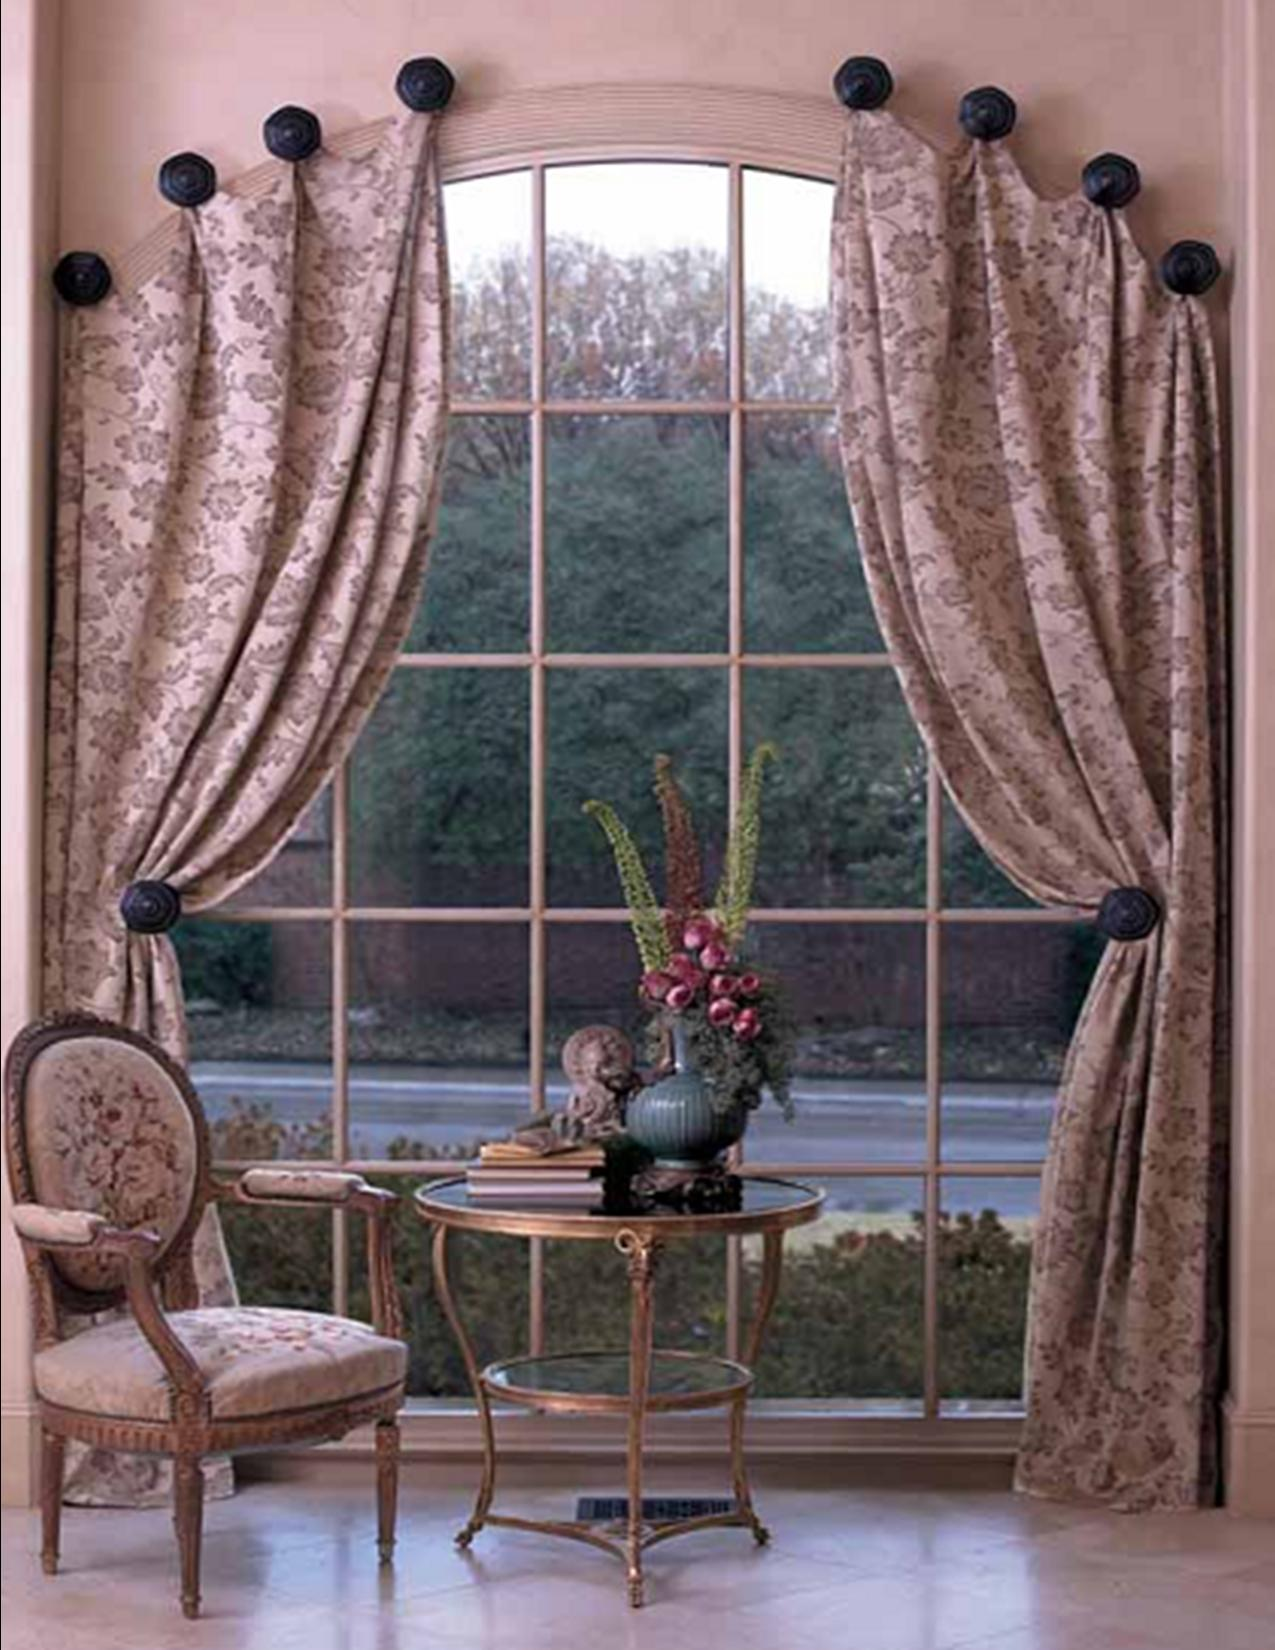 Curtains Ideas how many curtain panels : Fallon IL drapery | Edwardsville IL drapery | Belleville IL drapery ...